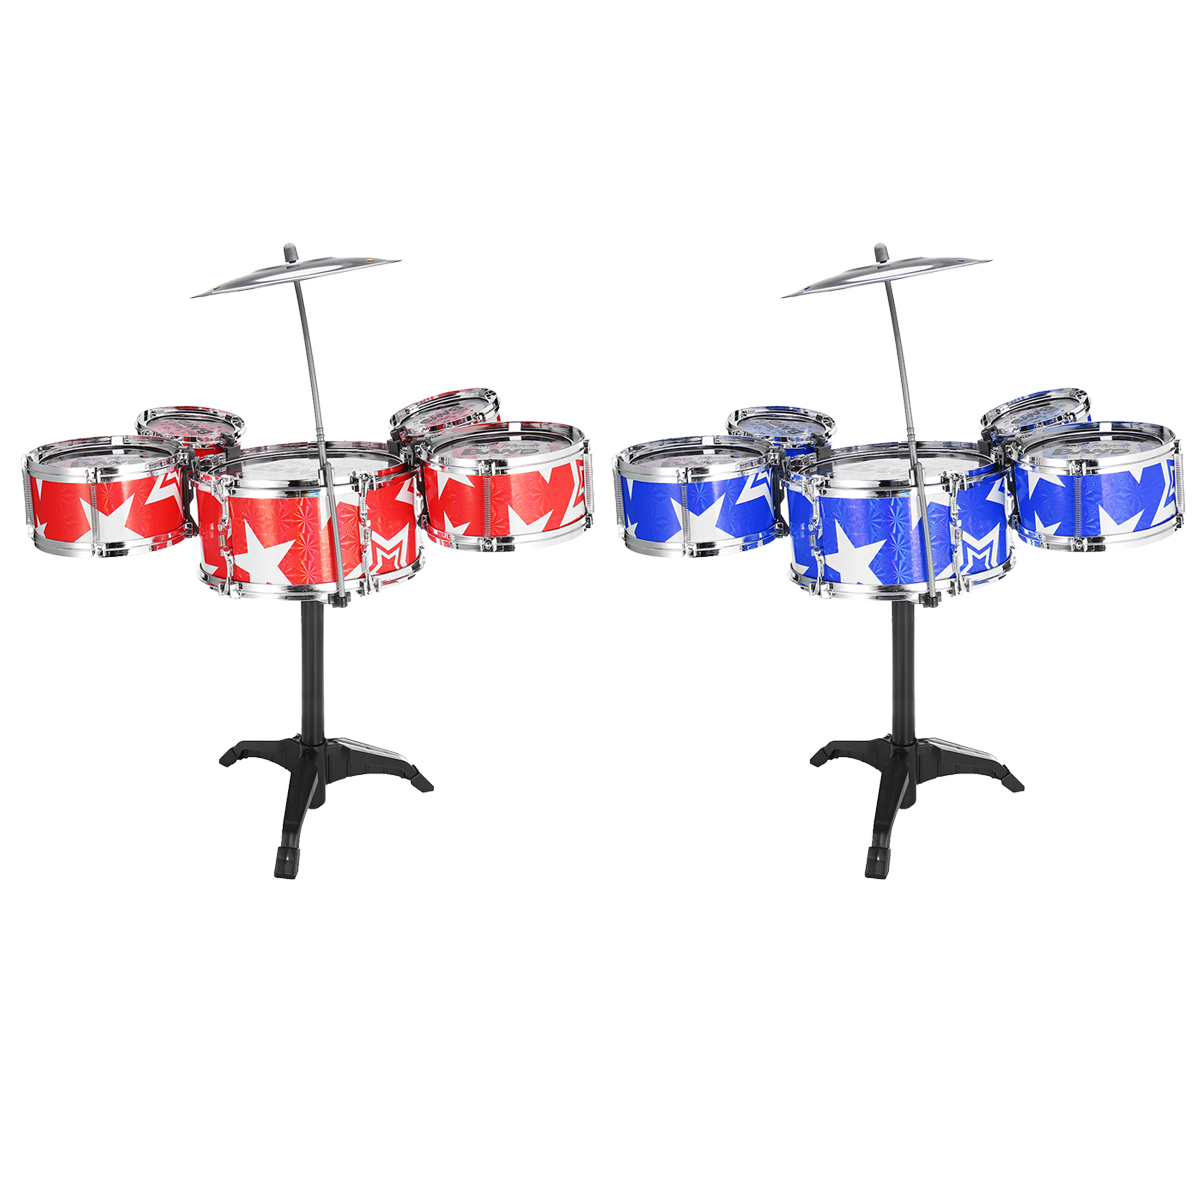 Ships & Boats - 9Pcs Childs Kids Drum Kit Jazz Band Sound Drums Play